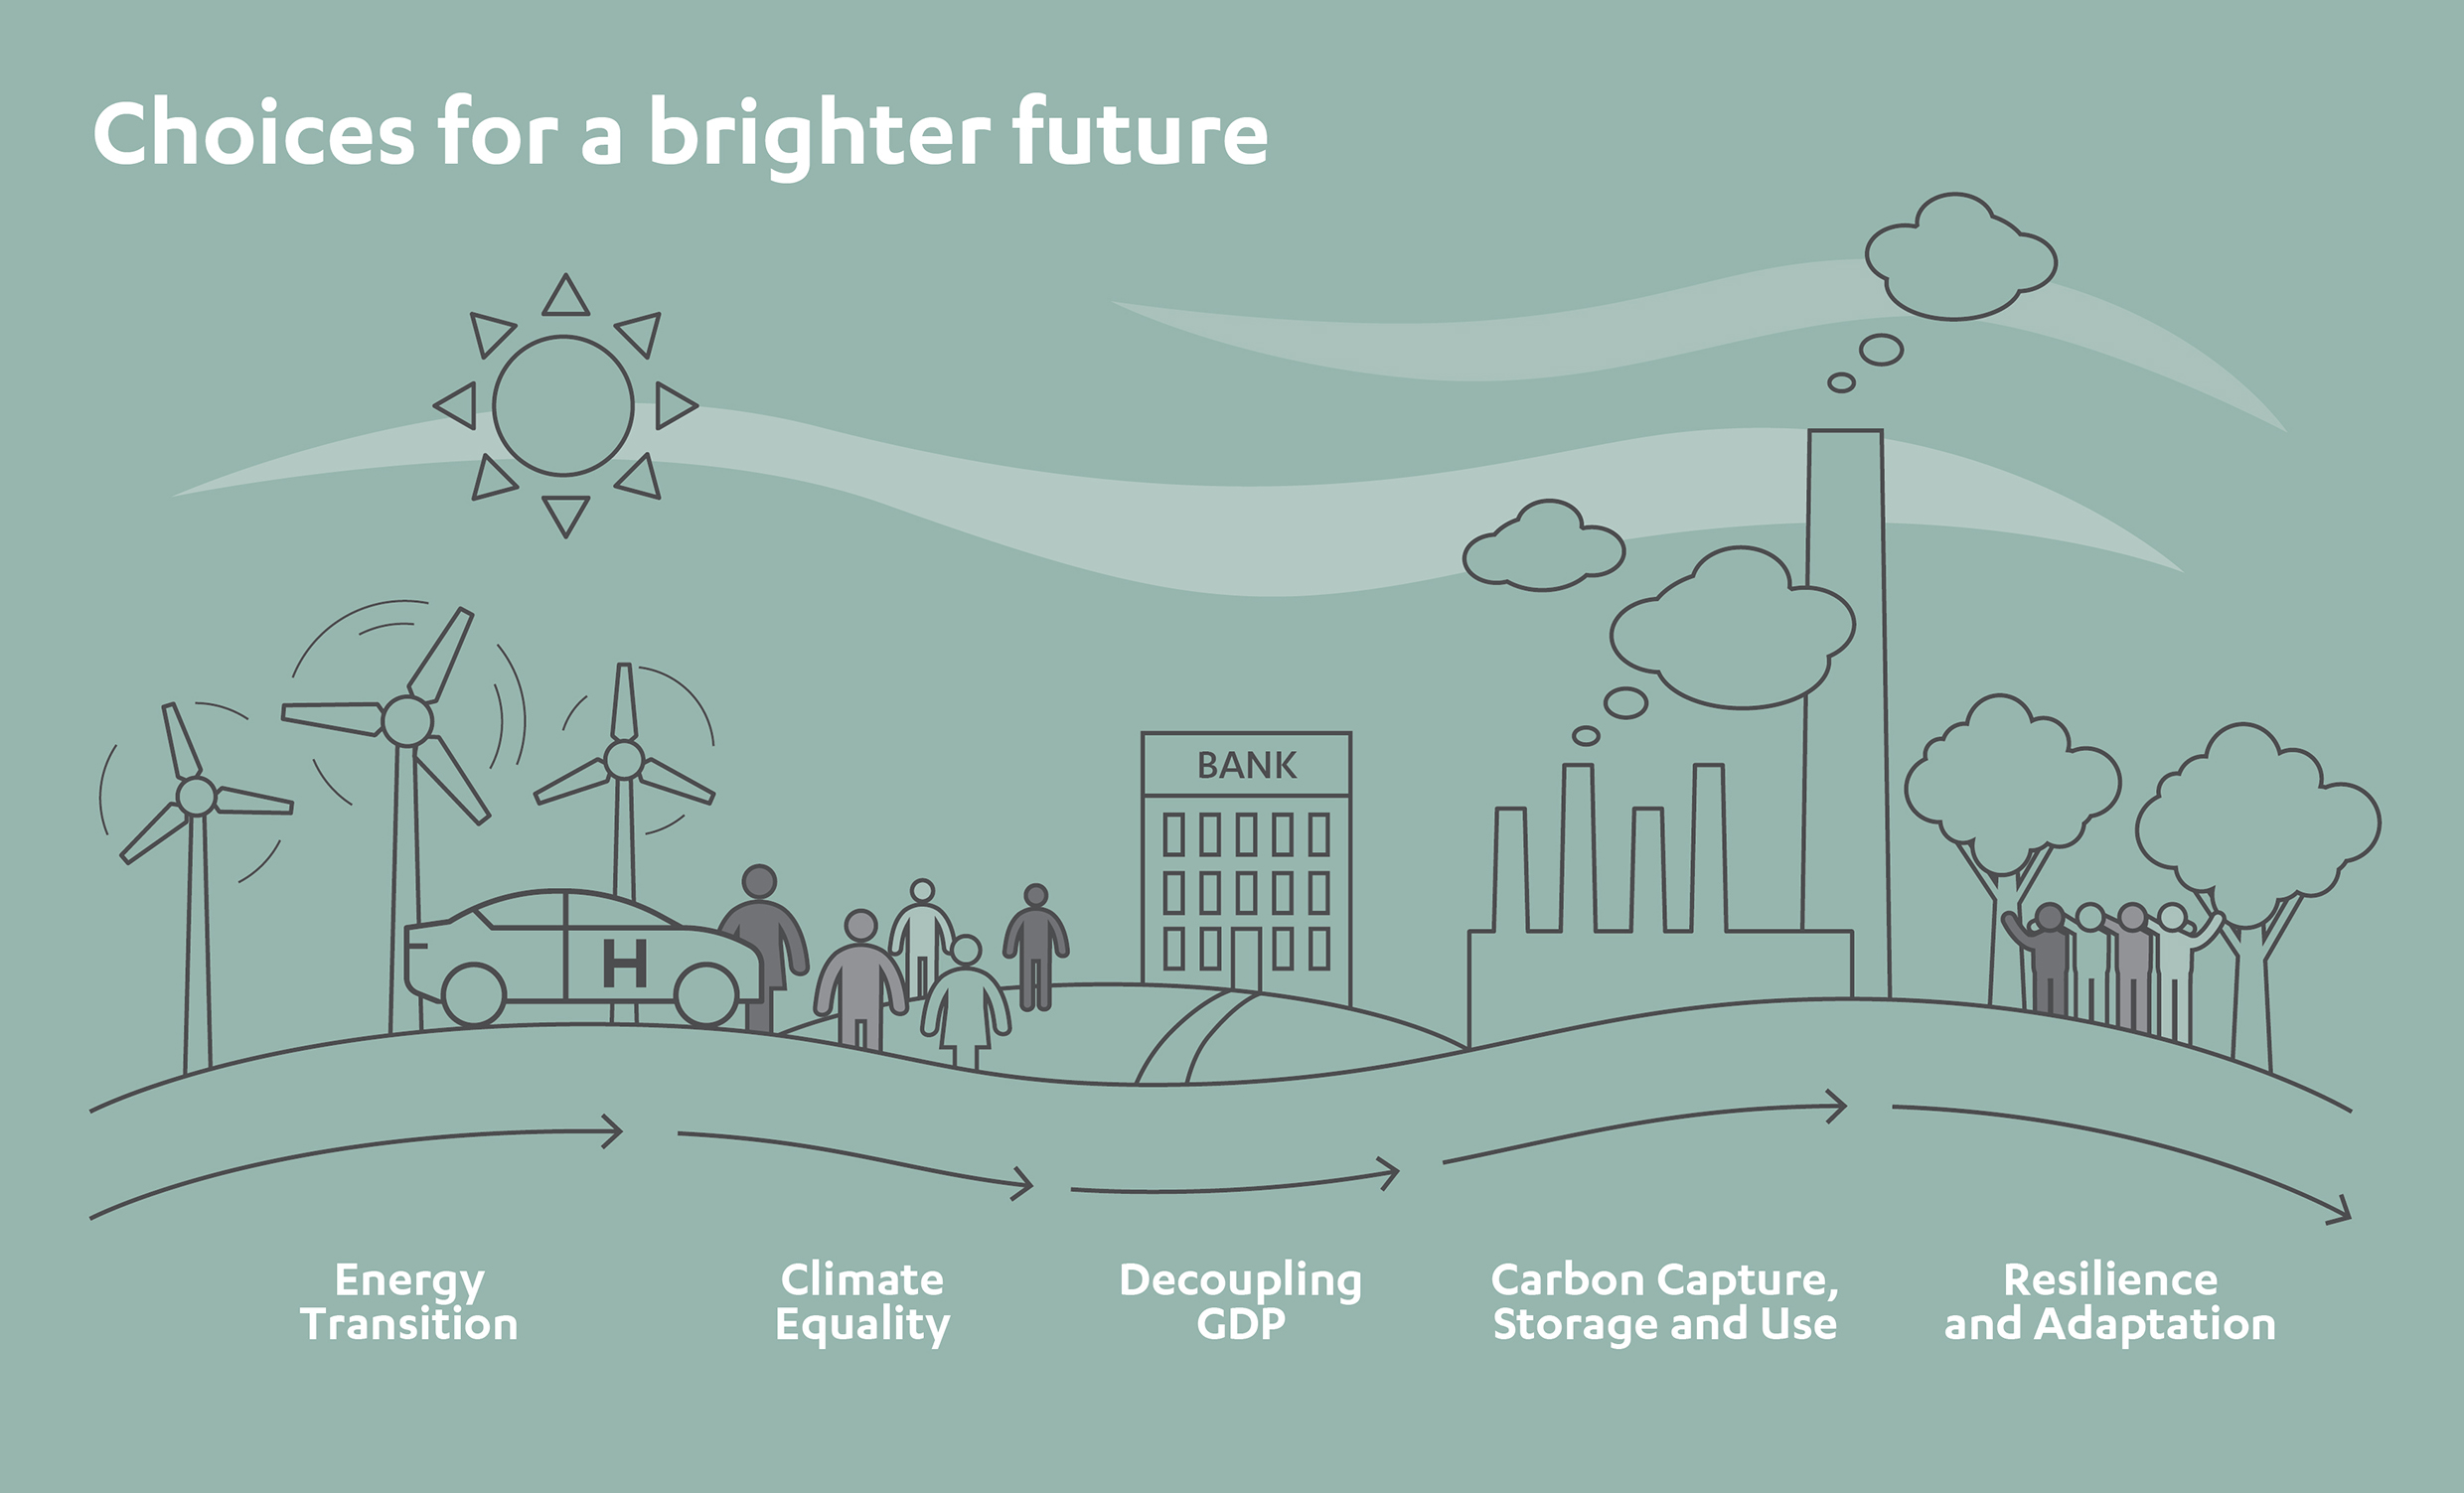 Choices for a Brighter Future